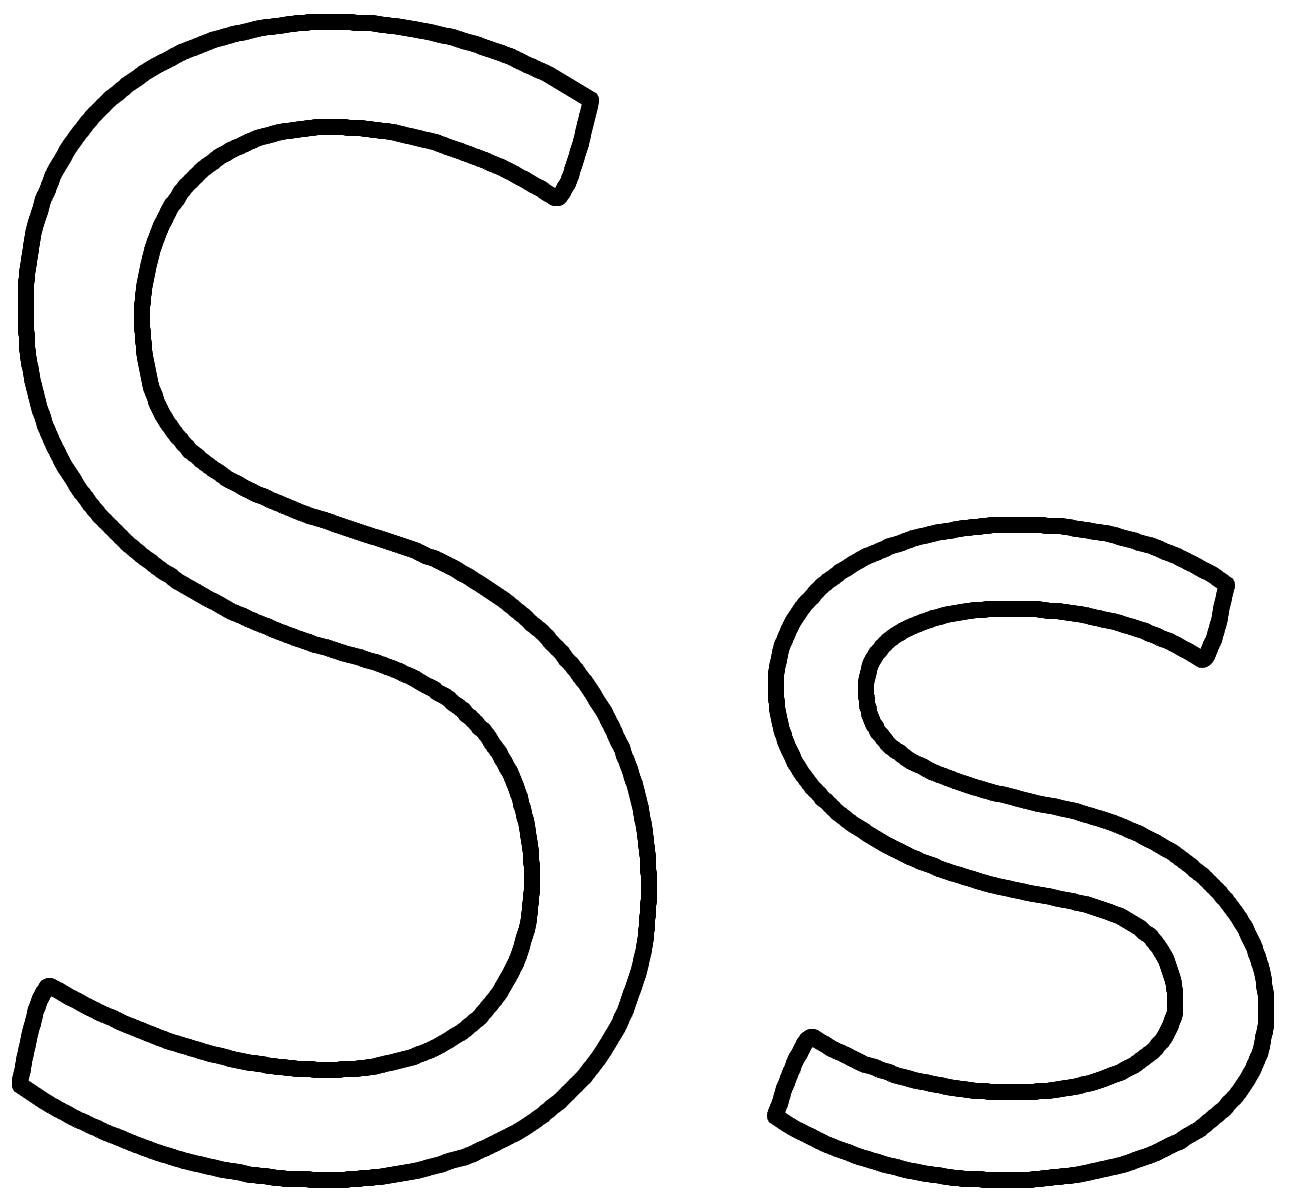 Coloring Pages Letter S